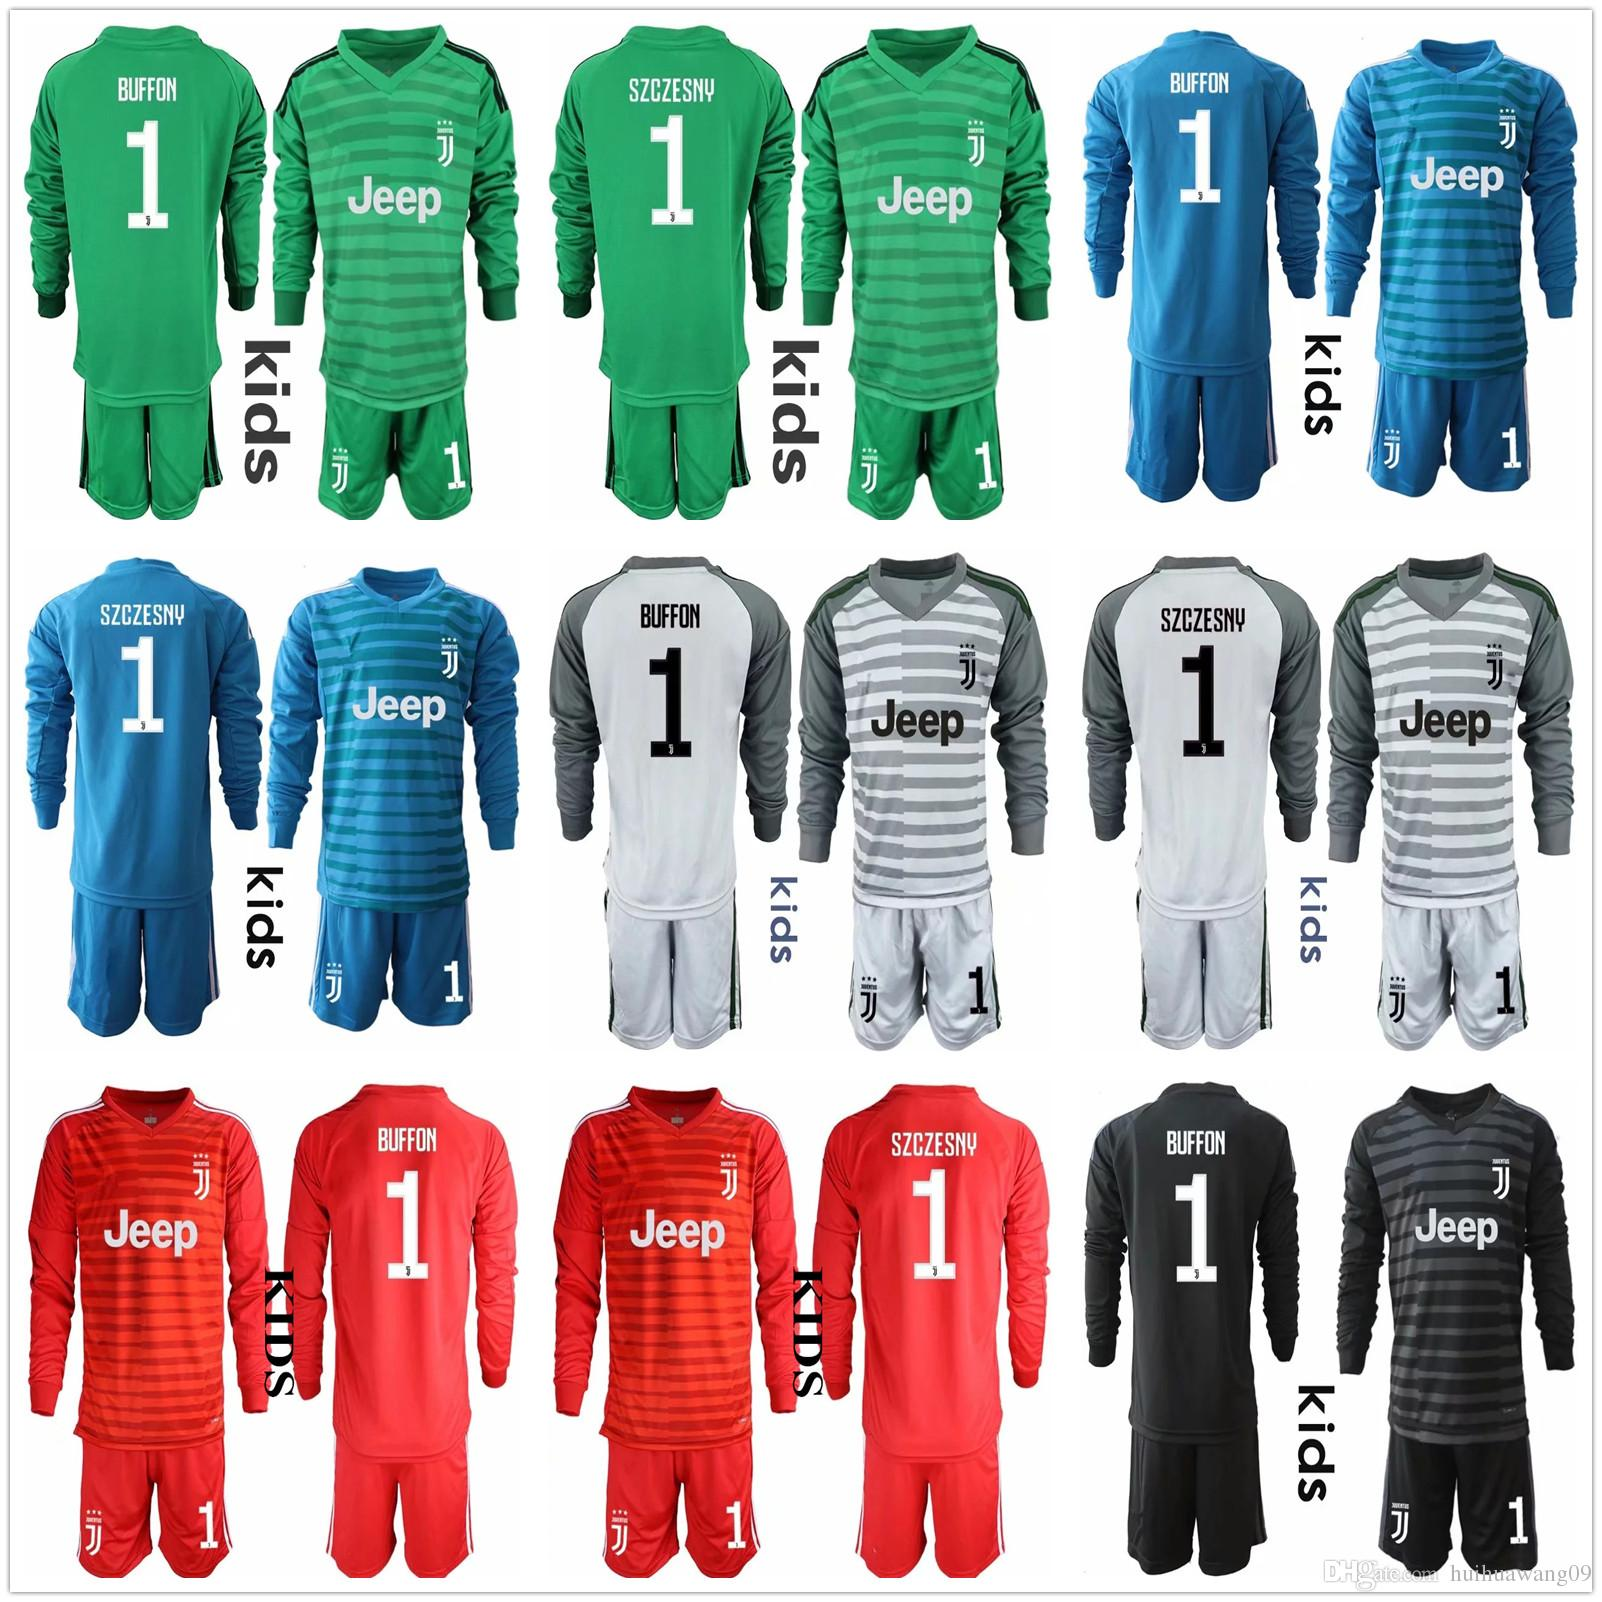 da124338917 2019 2018 2019 Juve Youth Kid Long Sleeve Goalkeeper Jerseys Kids Boys  Soccer Sets  1 Szczesny Kid Children Kits 1 Buffon Goalkeeper Uniform Sets  From ...